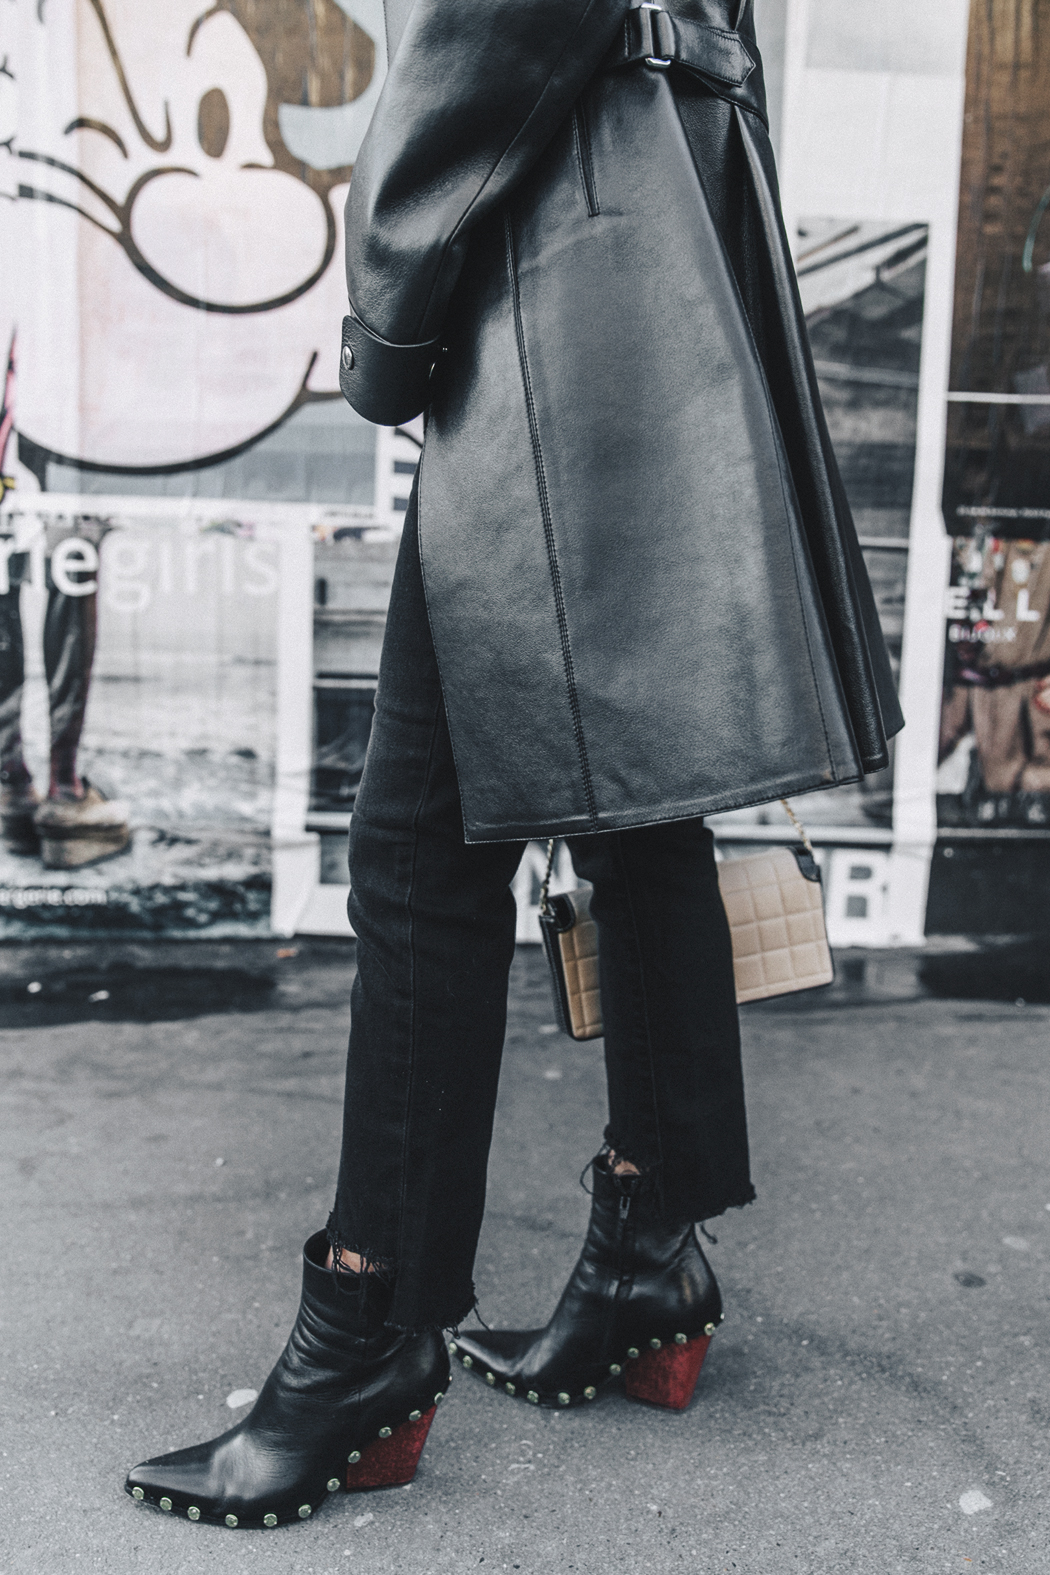 Vestiaire_Collective-Louis_Vuitton_Leather_Coat-Black_and_White-Chanel_Vintage-Celine_Boots-Street_Style-Outfit-PFW-28